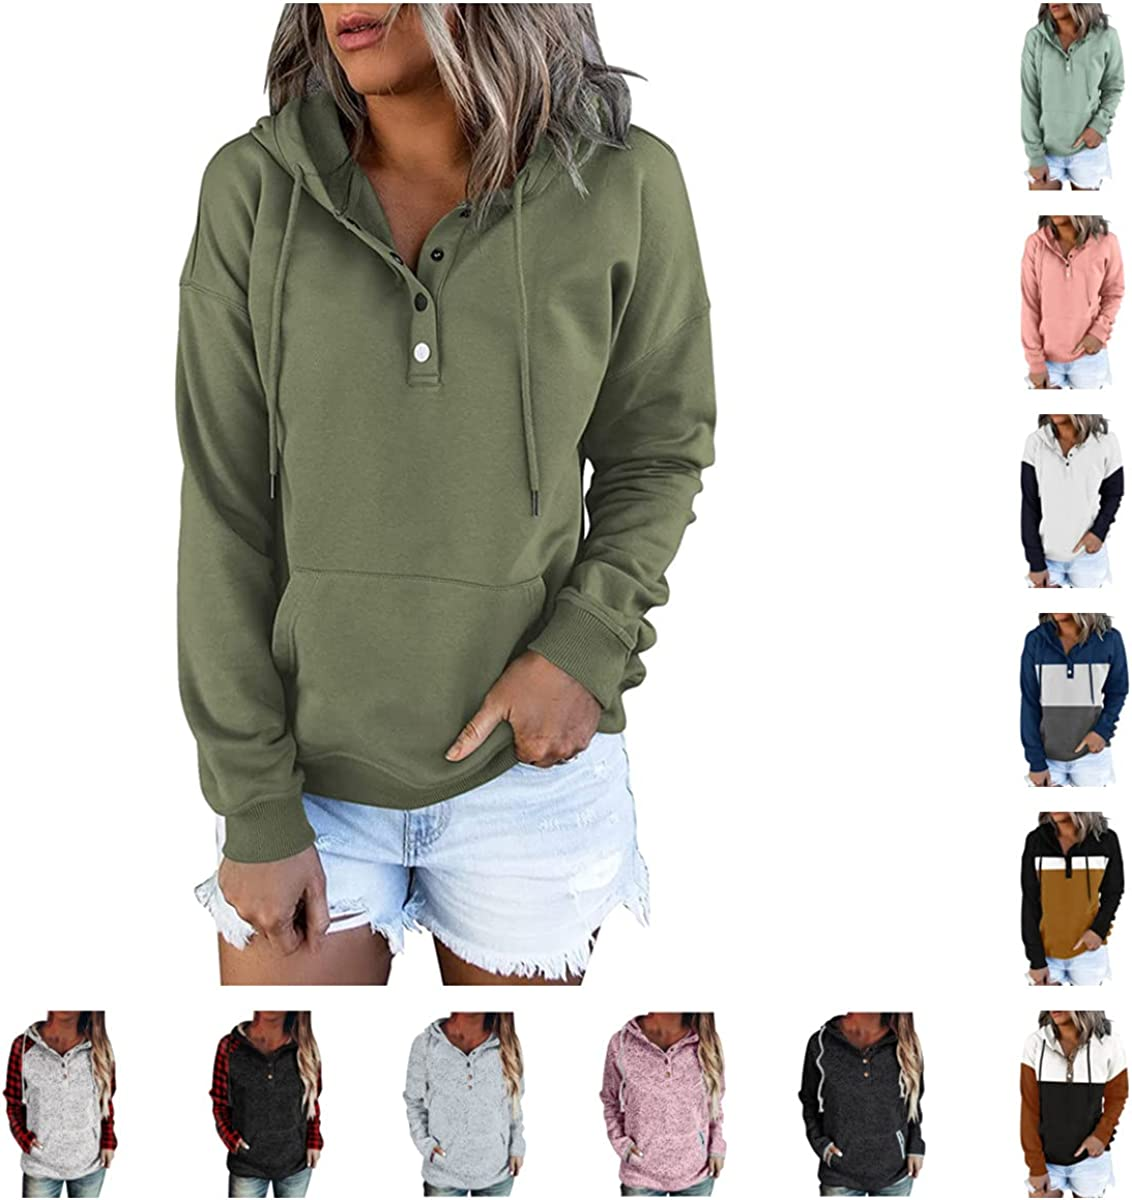 HGWXX7 Pullover Hoodies for Women Oversize Drawstring Sweatshirts Casual Button Down Long Sleeve Sports Pocket Tops